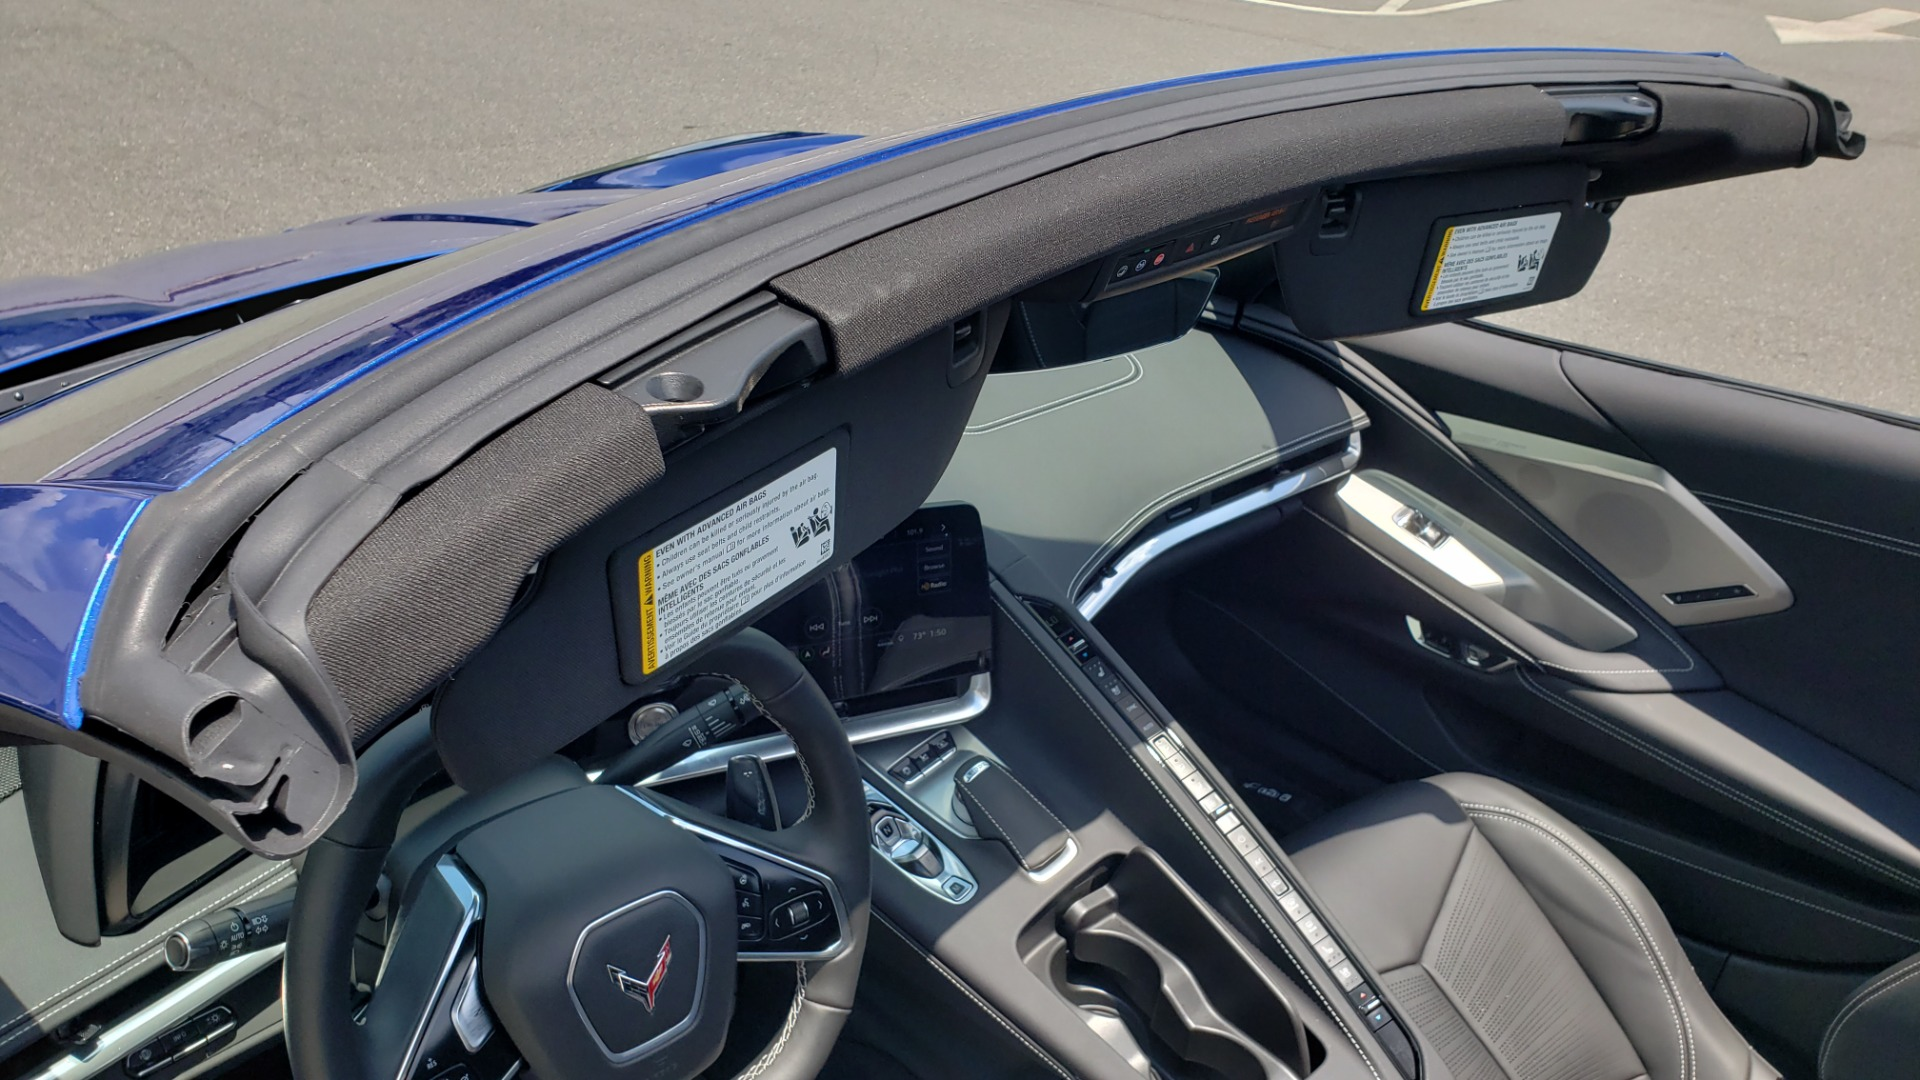 Used 2020 Chevrolet CORVETTE C8 STINGRAY COUPE 2LT / PERF & Z51 PKG / NAV / BOSE / 8-SPD AUTO / REARVIEW for sale Sold at Formula Imports in Charlotte NC 28227 43